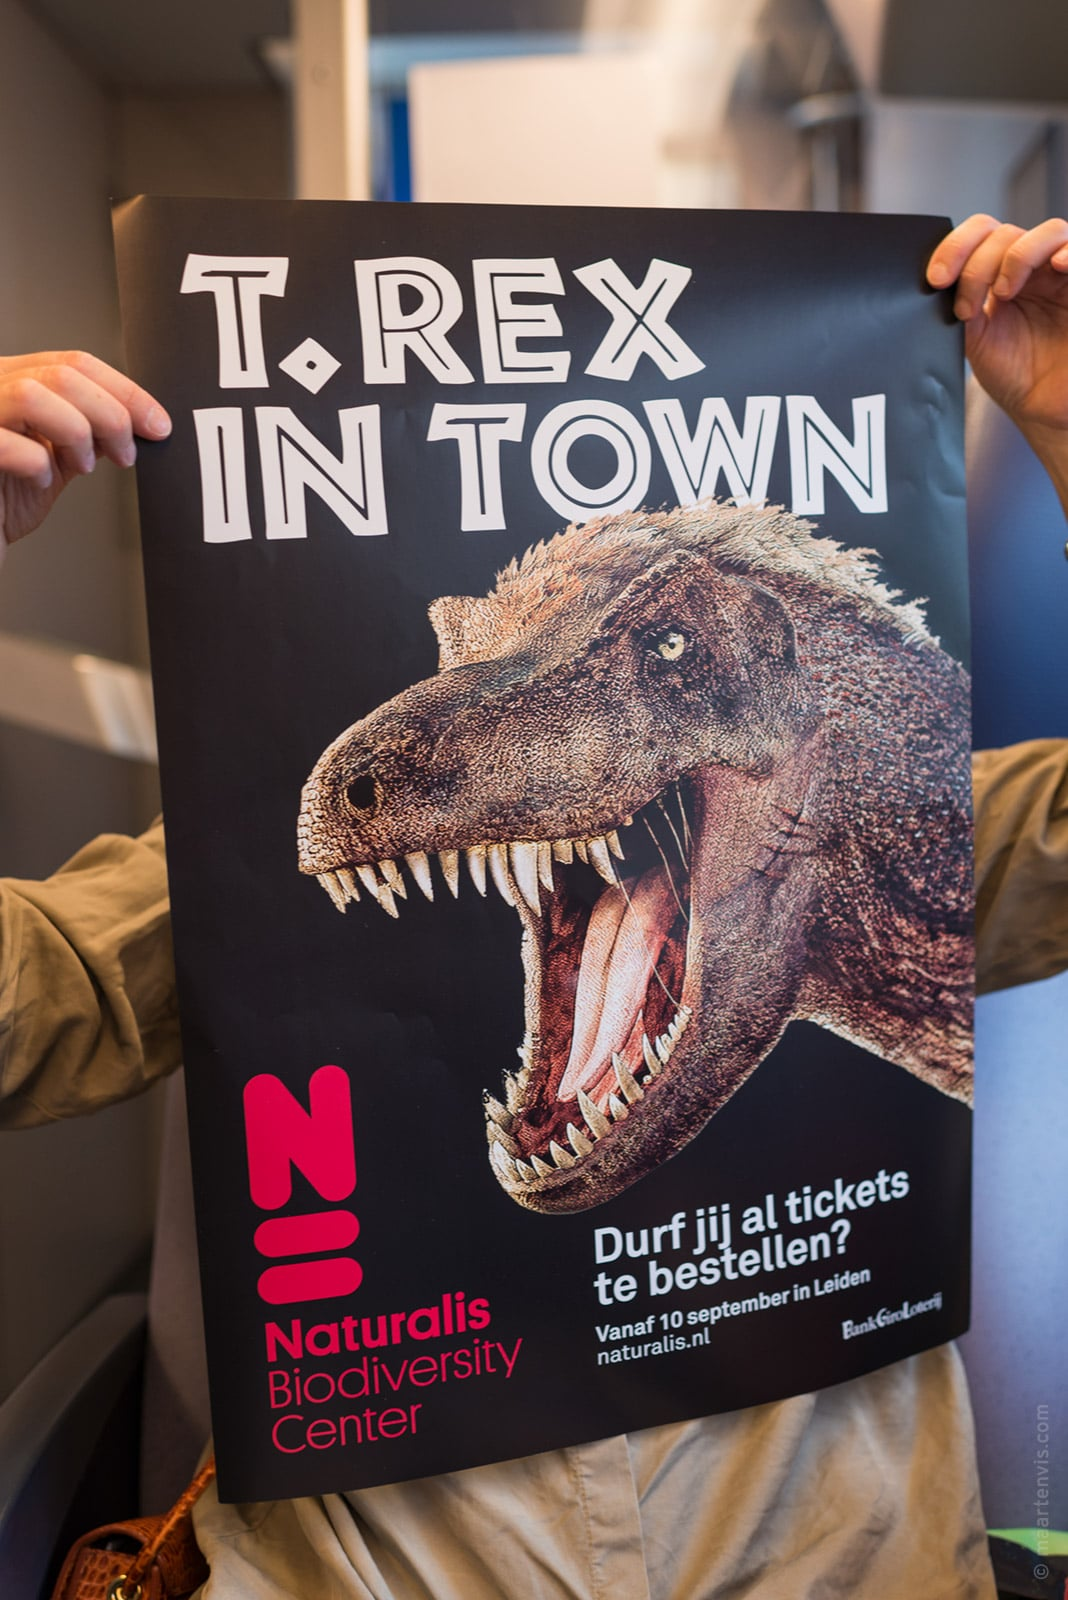 20161123 5691 - Meeting T-Rex Trix